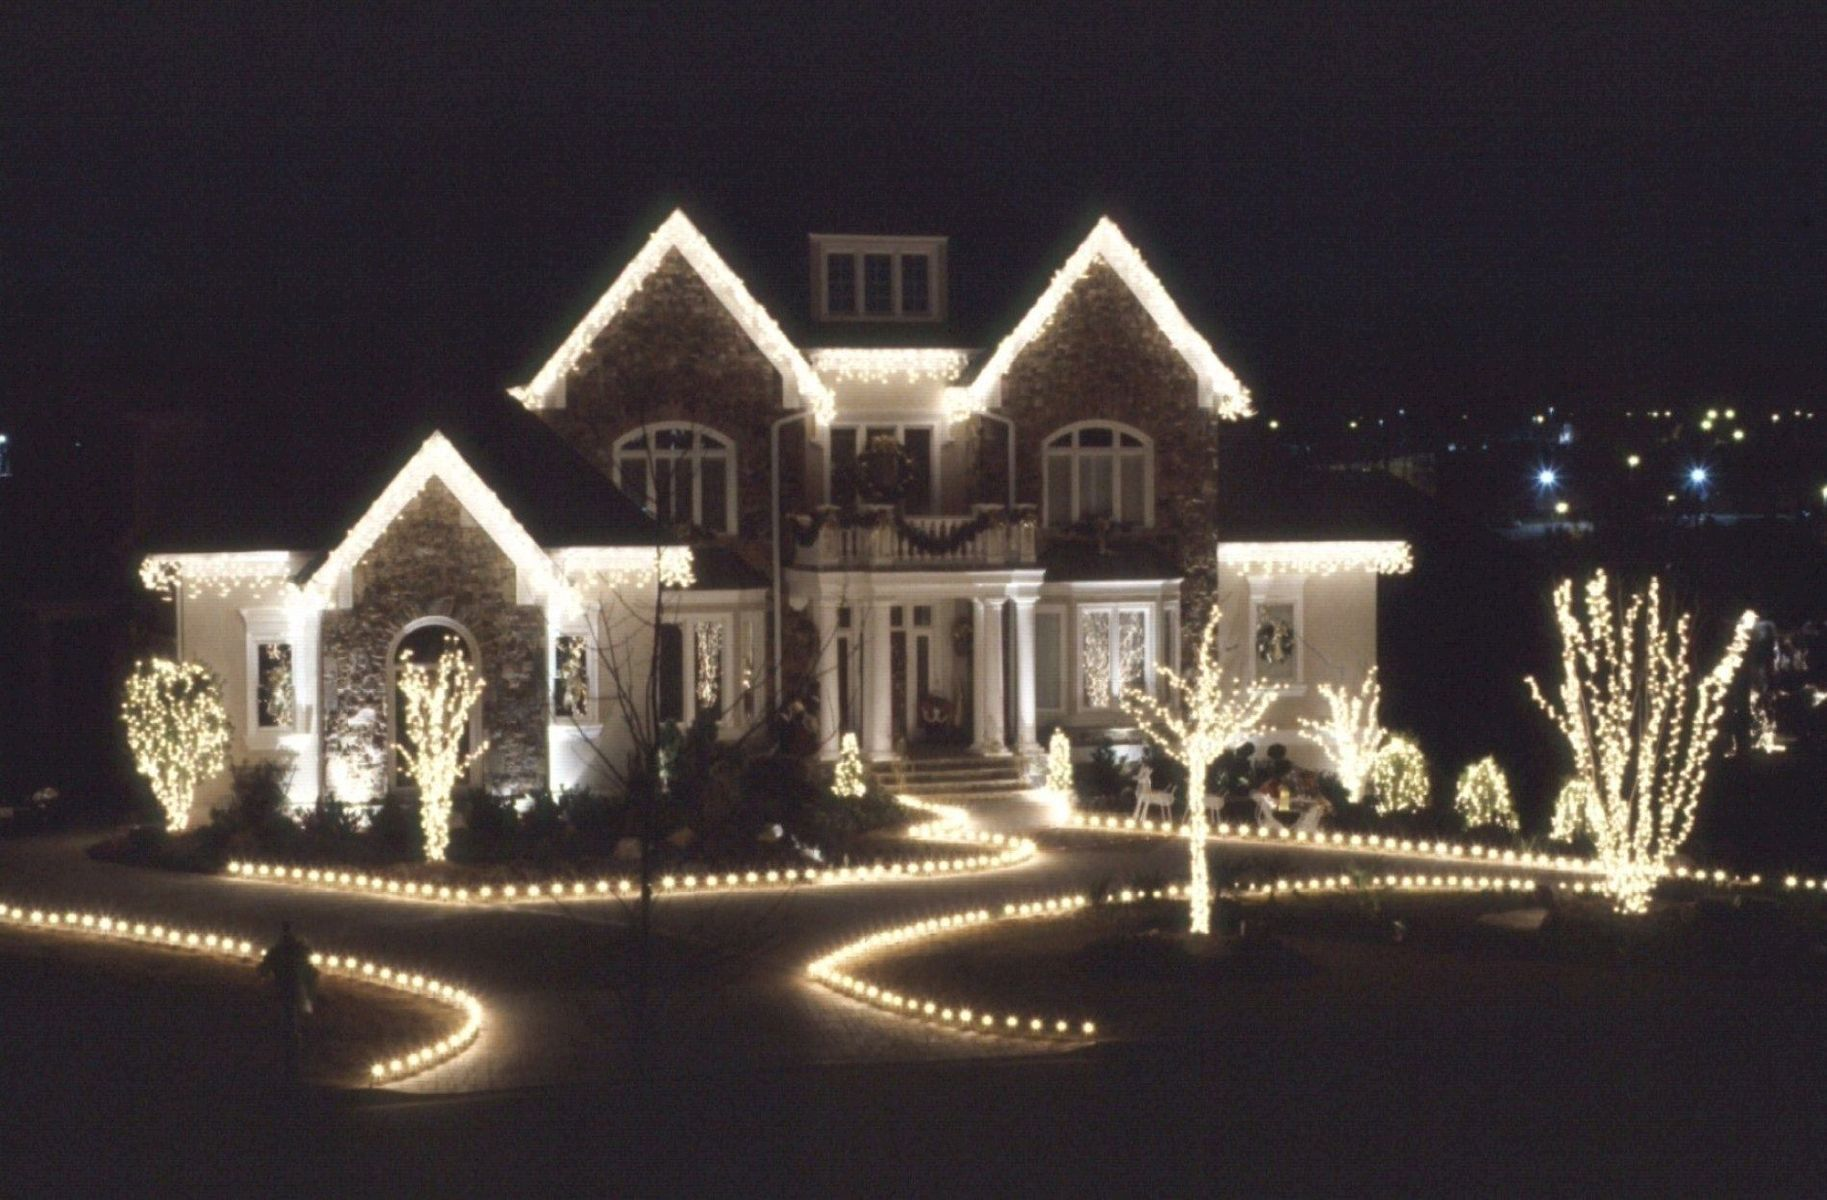 Outdoor Christmas Lights Decorations Ideas 26 Jihanshanum White Christmas Lights Christmas Lights Outside Exterior Christmas Lights,Home Decor Newspaper Art And Craft